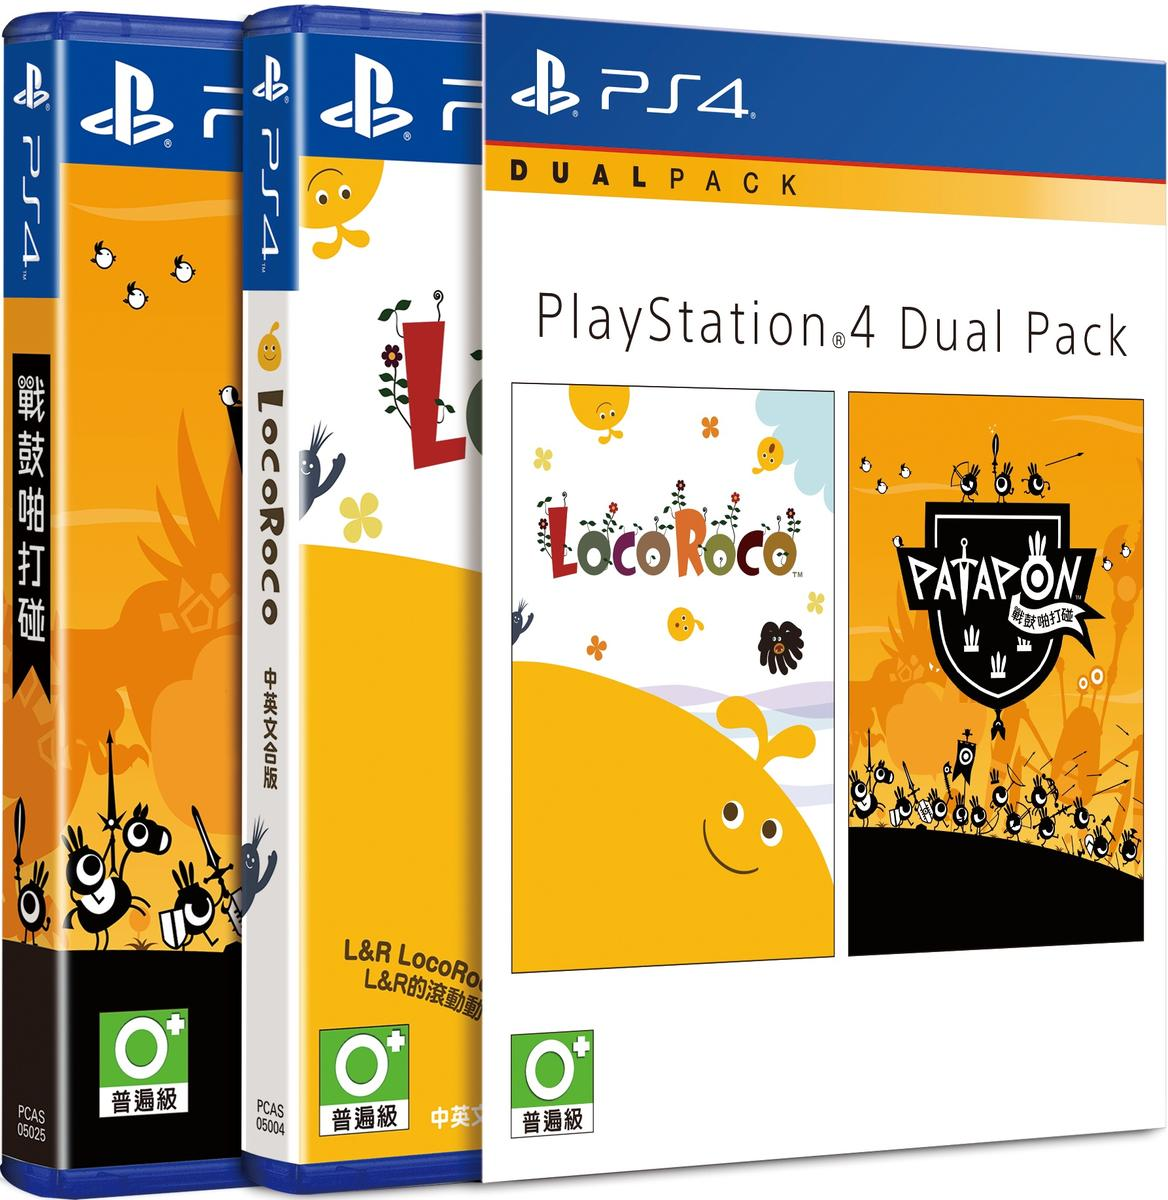 PS4_DualPack_FP_TC.jpg